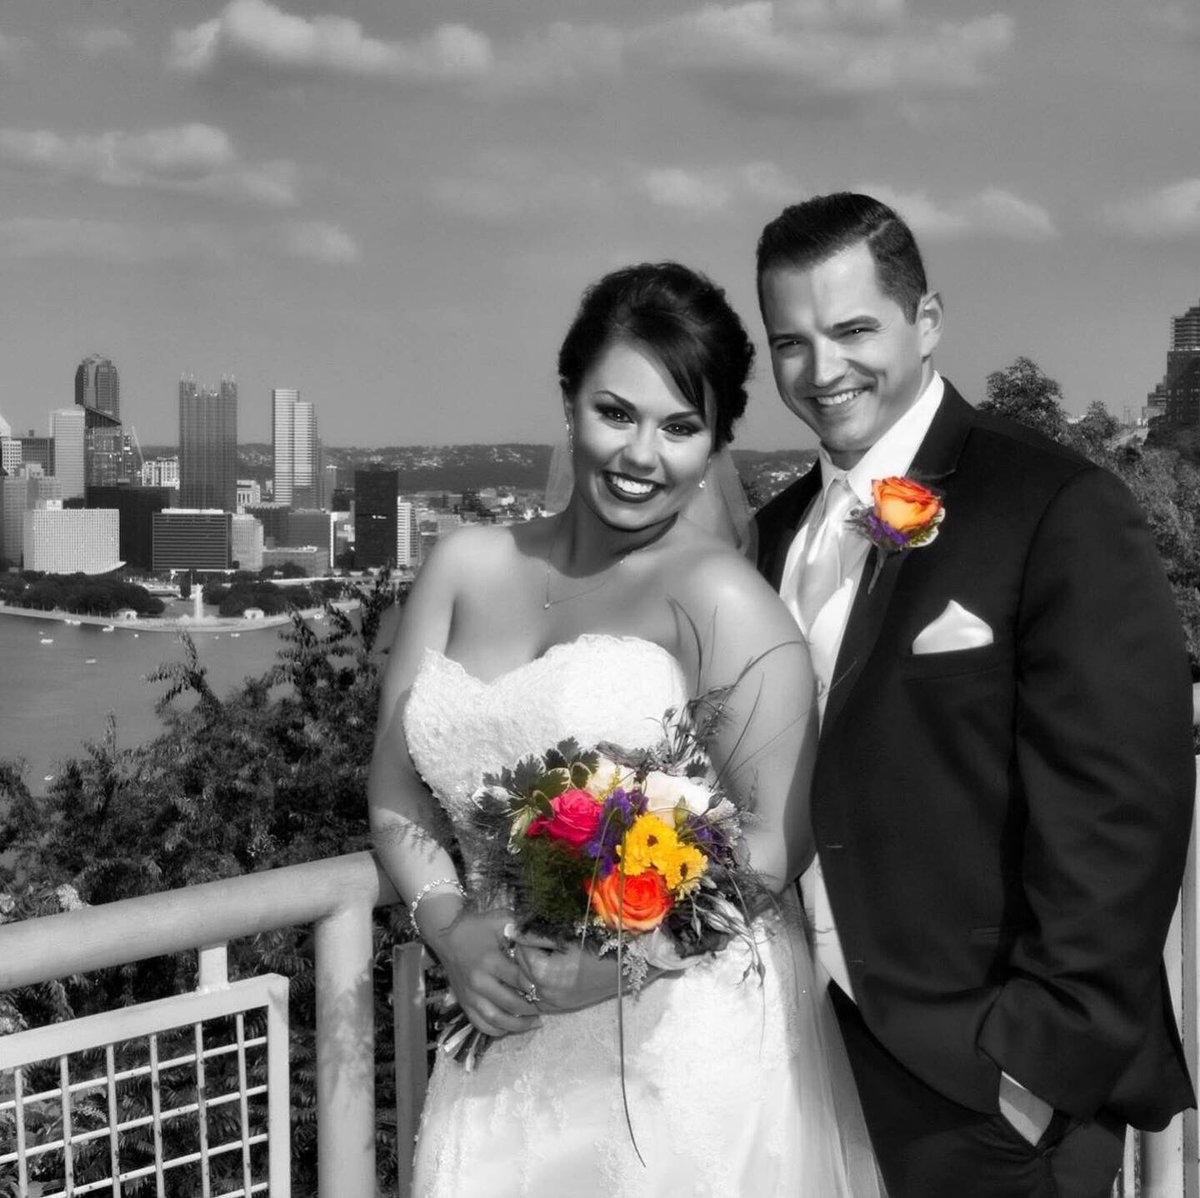 Celebrating 4 years with this stud today! 😍❤️☺️#BonatestaFiesta #711Day  – at Sheraton Pittsburgh Hotel at Station Square